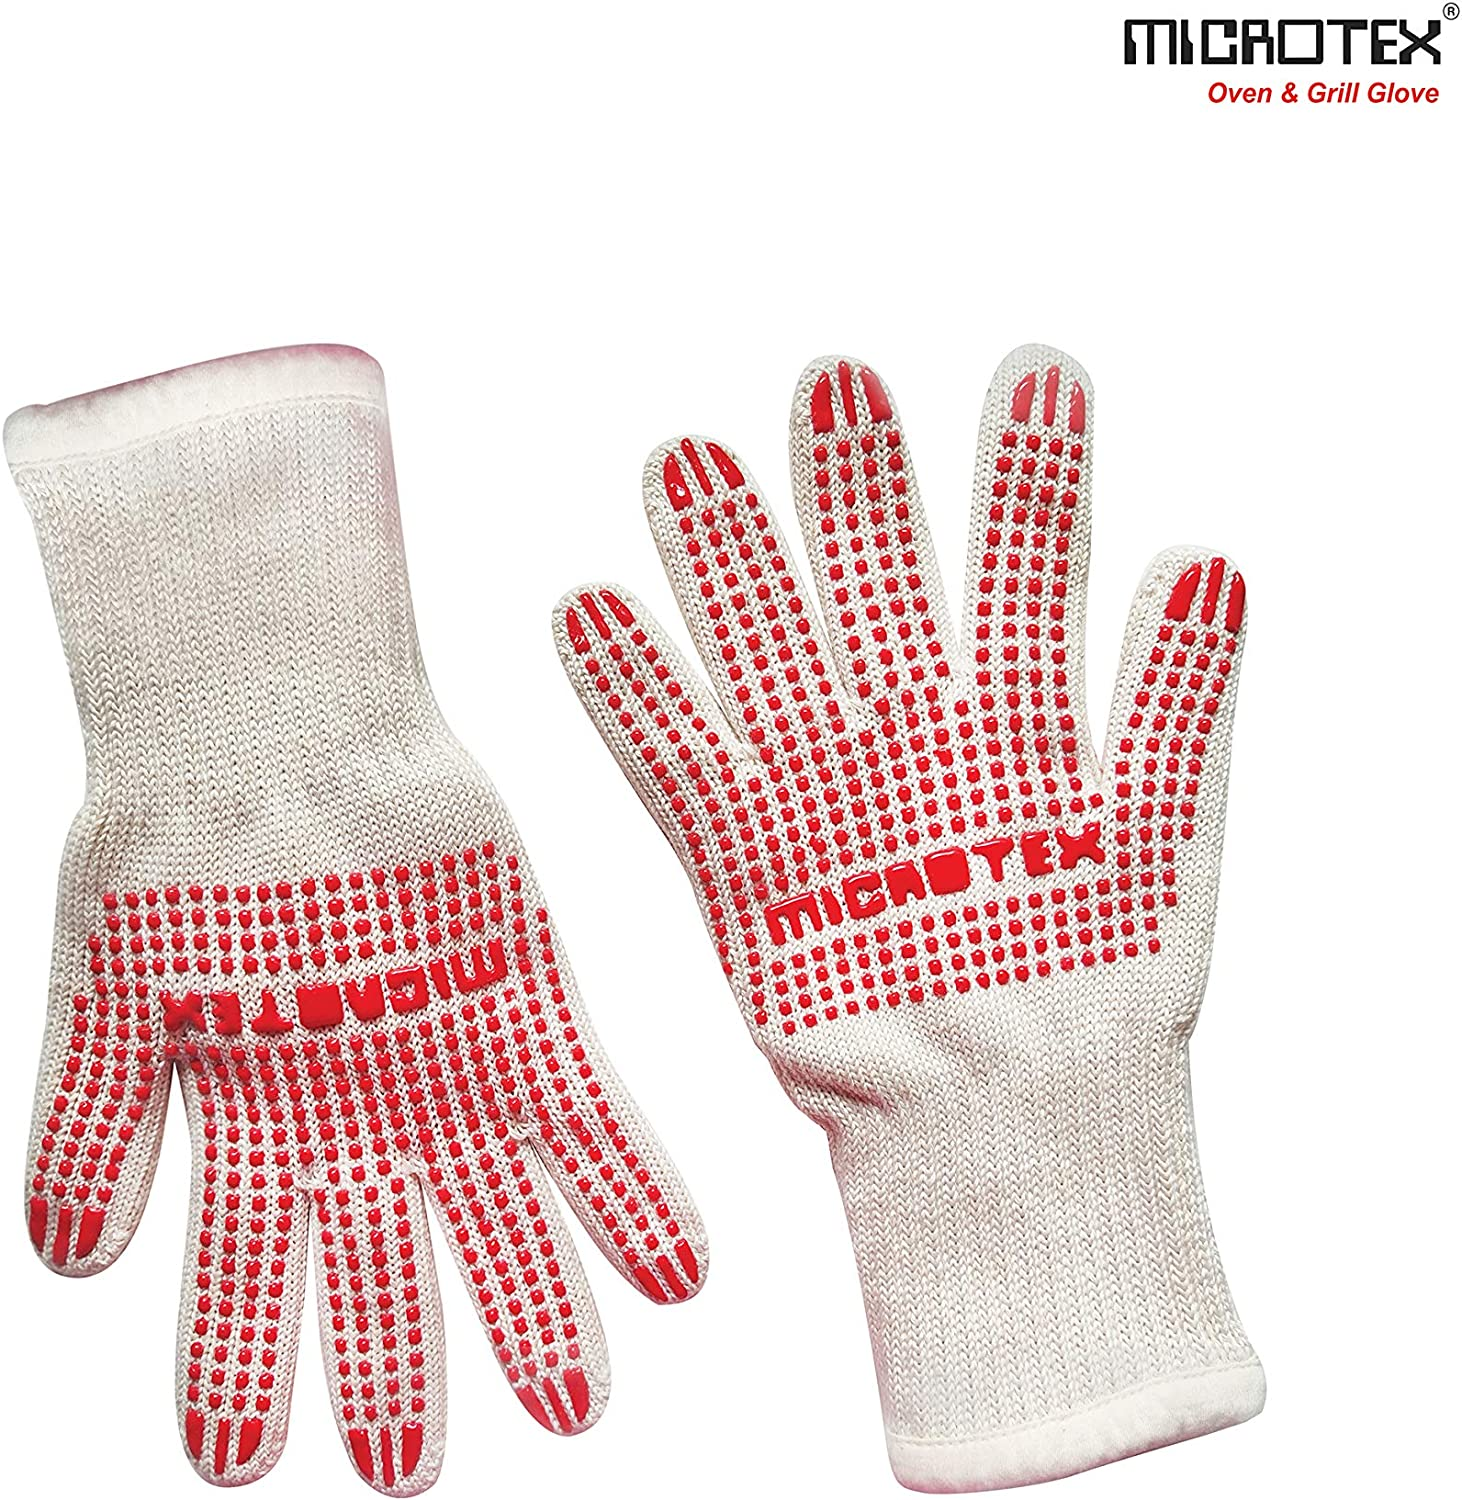 Microtex Oven & Grill Gloves, Resistant BBQ Oven Safety Gloves- Food Grade Cook Gloves, Non-Slippery Silicone Grip, Extra Wrist Protection, 12 inches Cuff, Light Weight Handy Hook